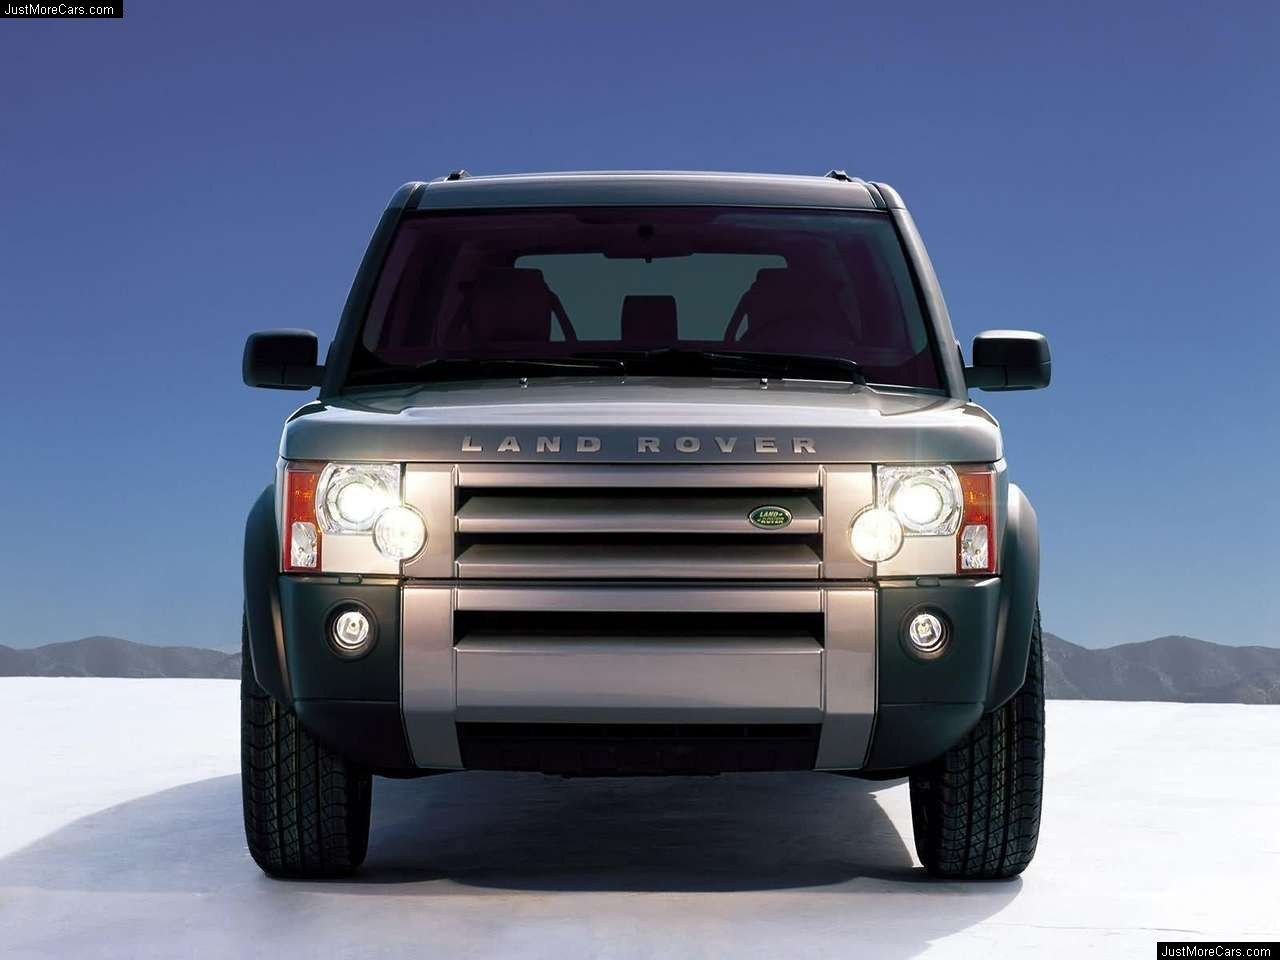 Pin By Tyler Hart On Cars Land Rover Land Rover Discovery Discovery Car